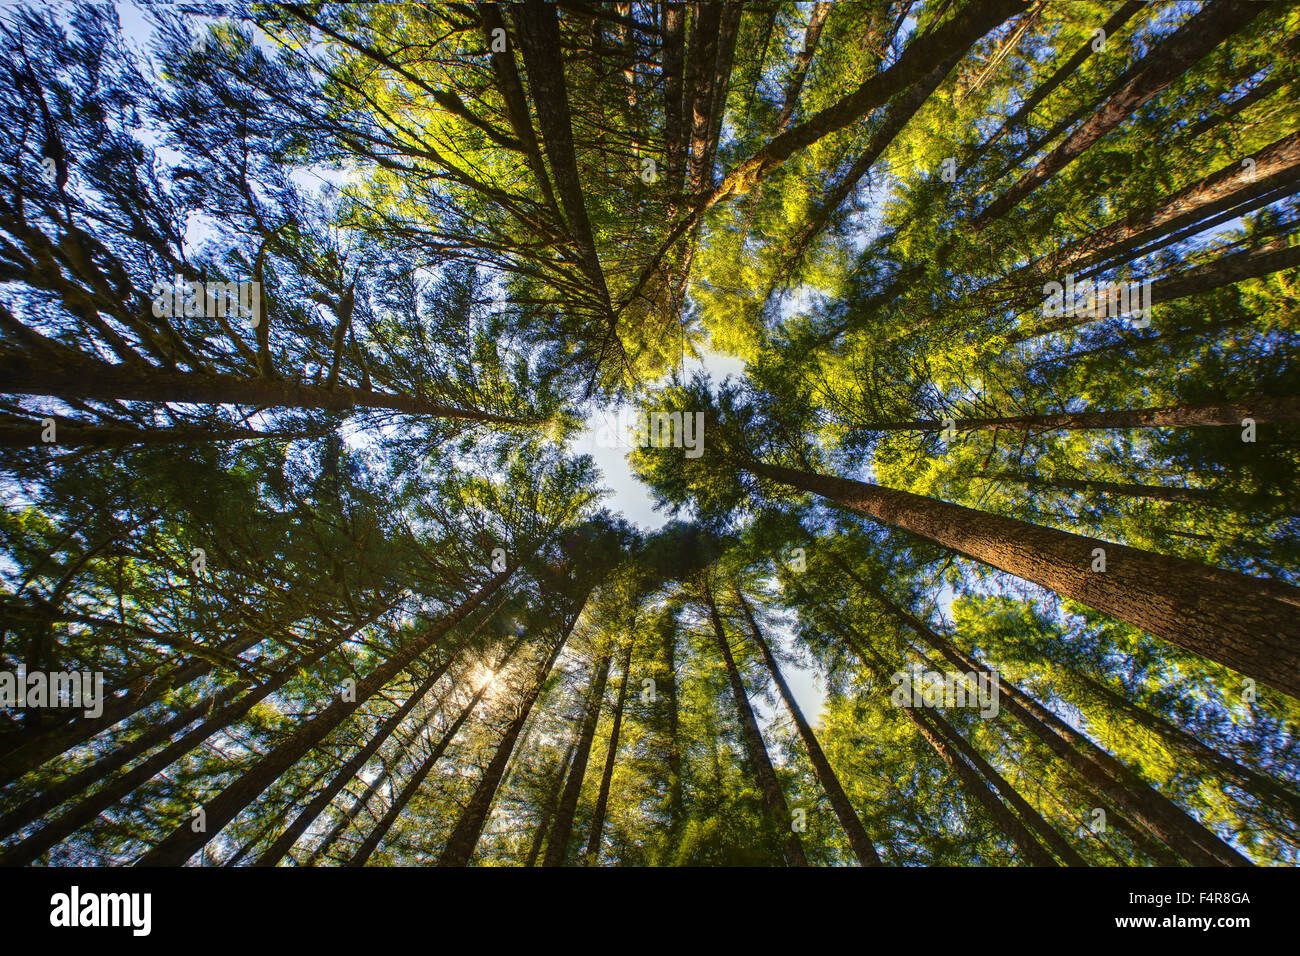 Trees, USA, United States, America, from below, forest - Stock Image